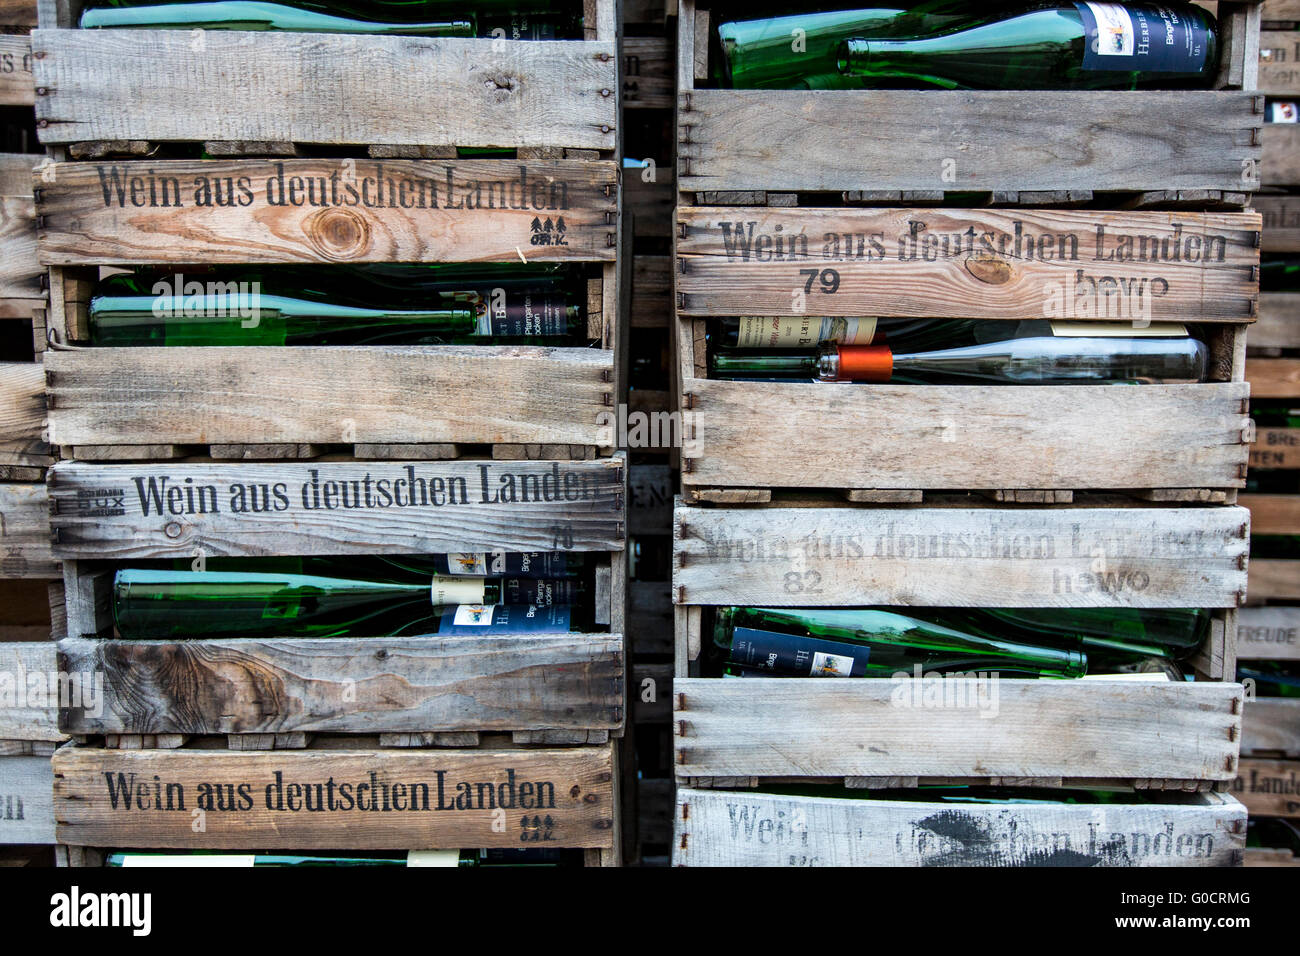 Wooden wine boxes, filled with empty wine bottles, branded with wine from Germany, Stock Photo